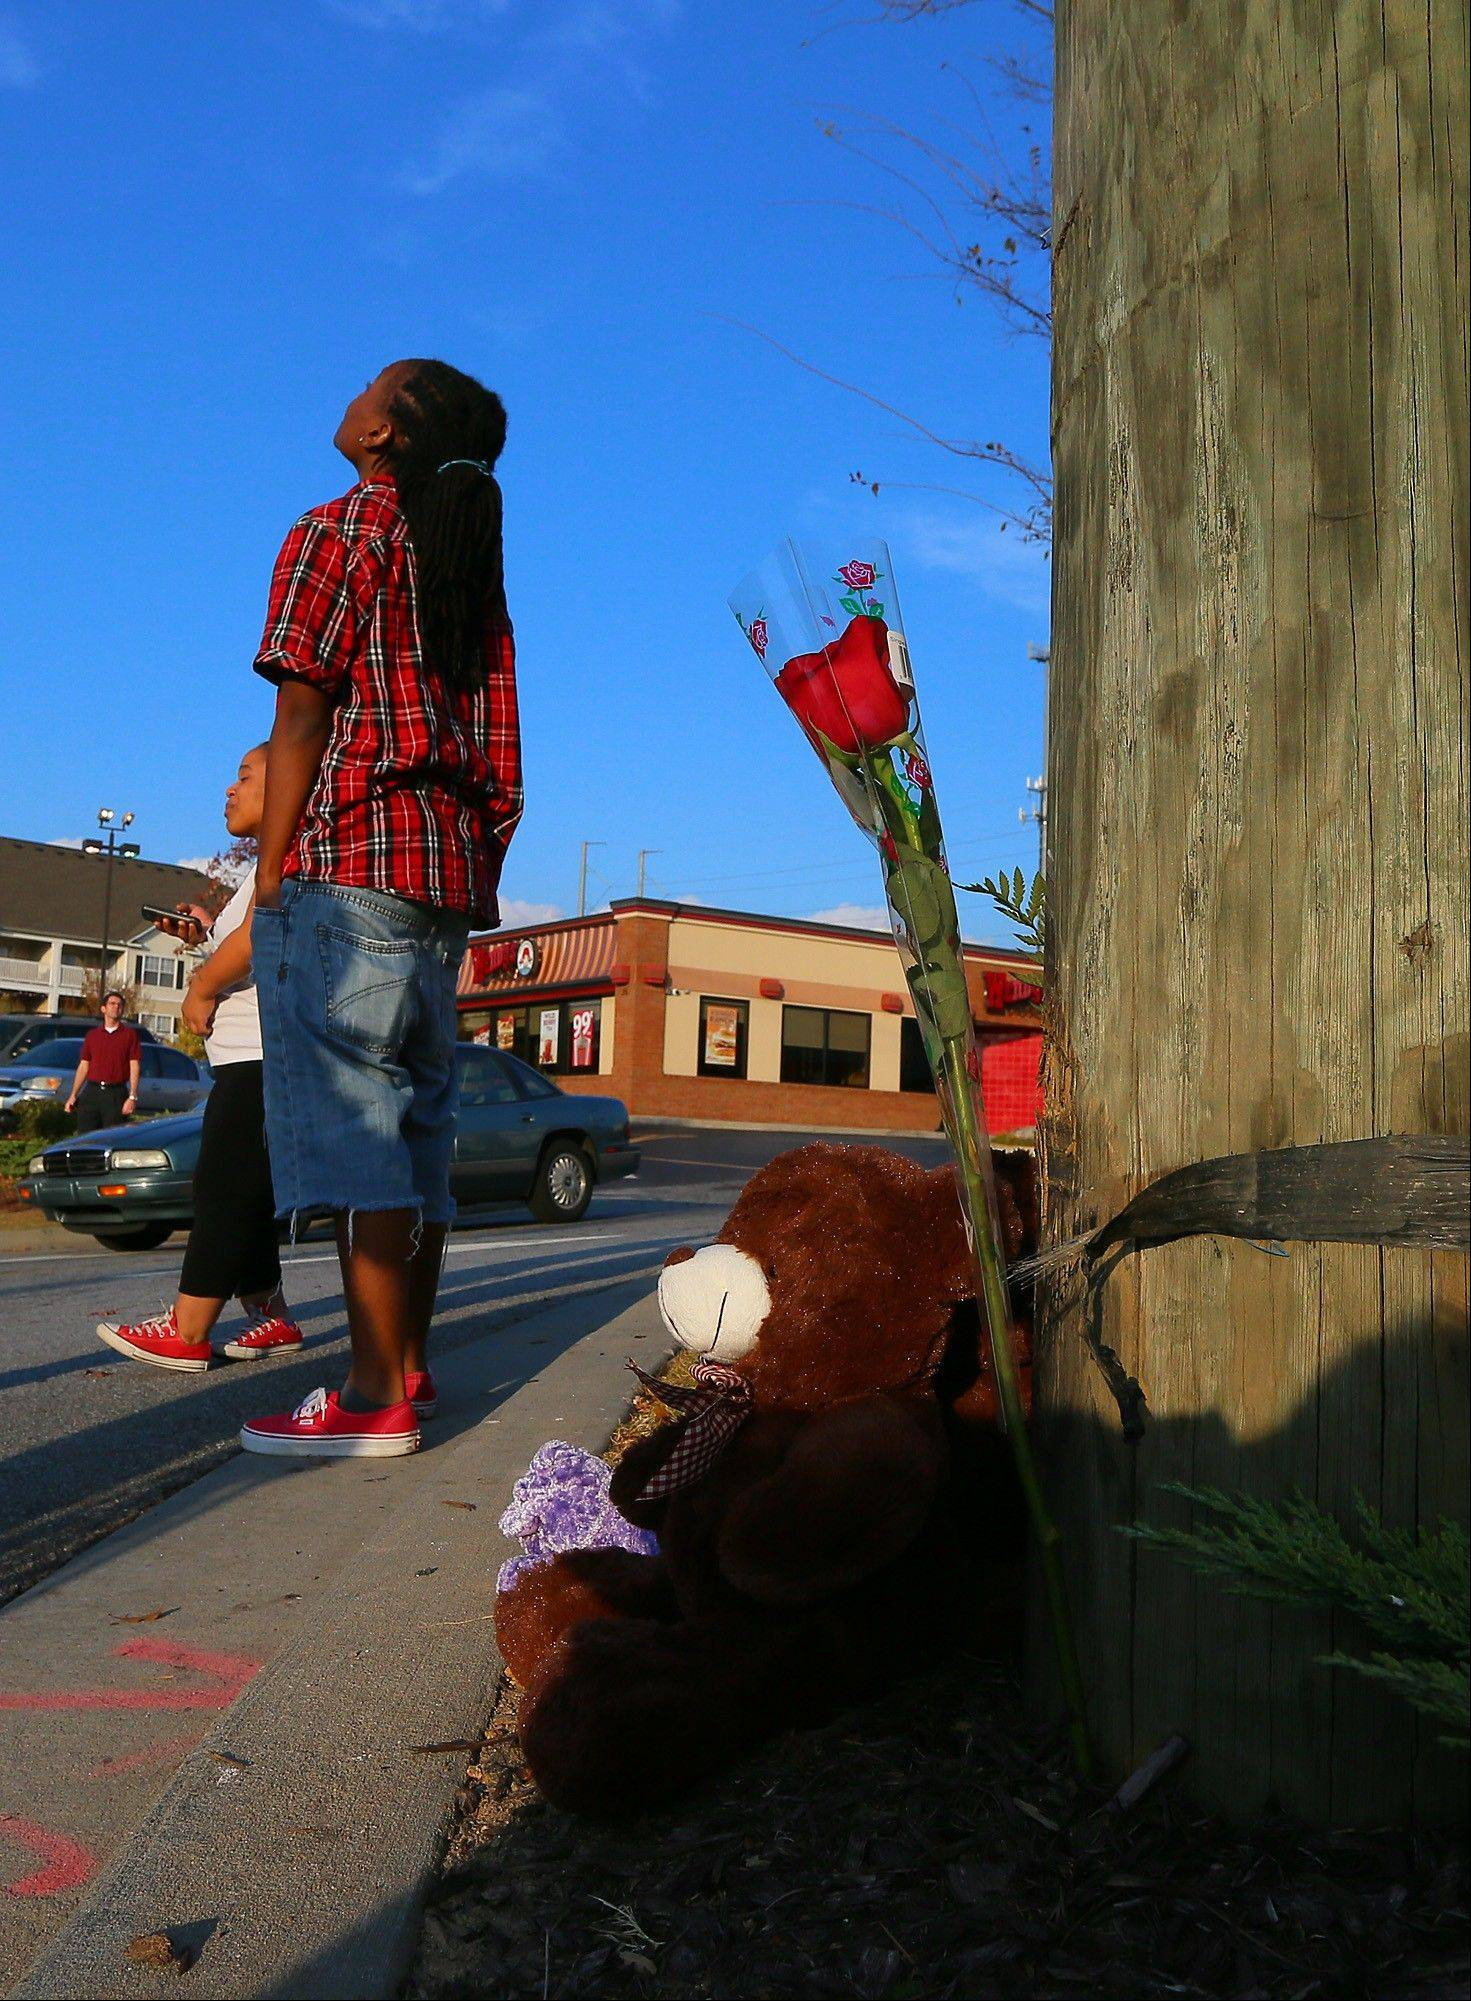 Local resident Ciara Edmonds glances up at telephone wires and lines Sunday after placing a rose on a shrine of the crash site where a police helicopter crashed killing two officers in Atlanta. The crash occurred Saturday during a search for a missing child.